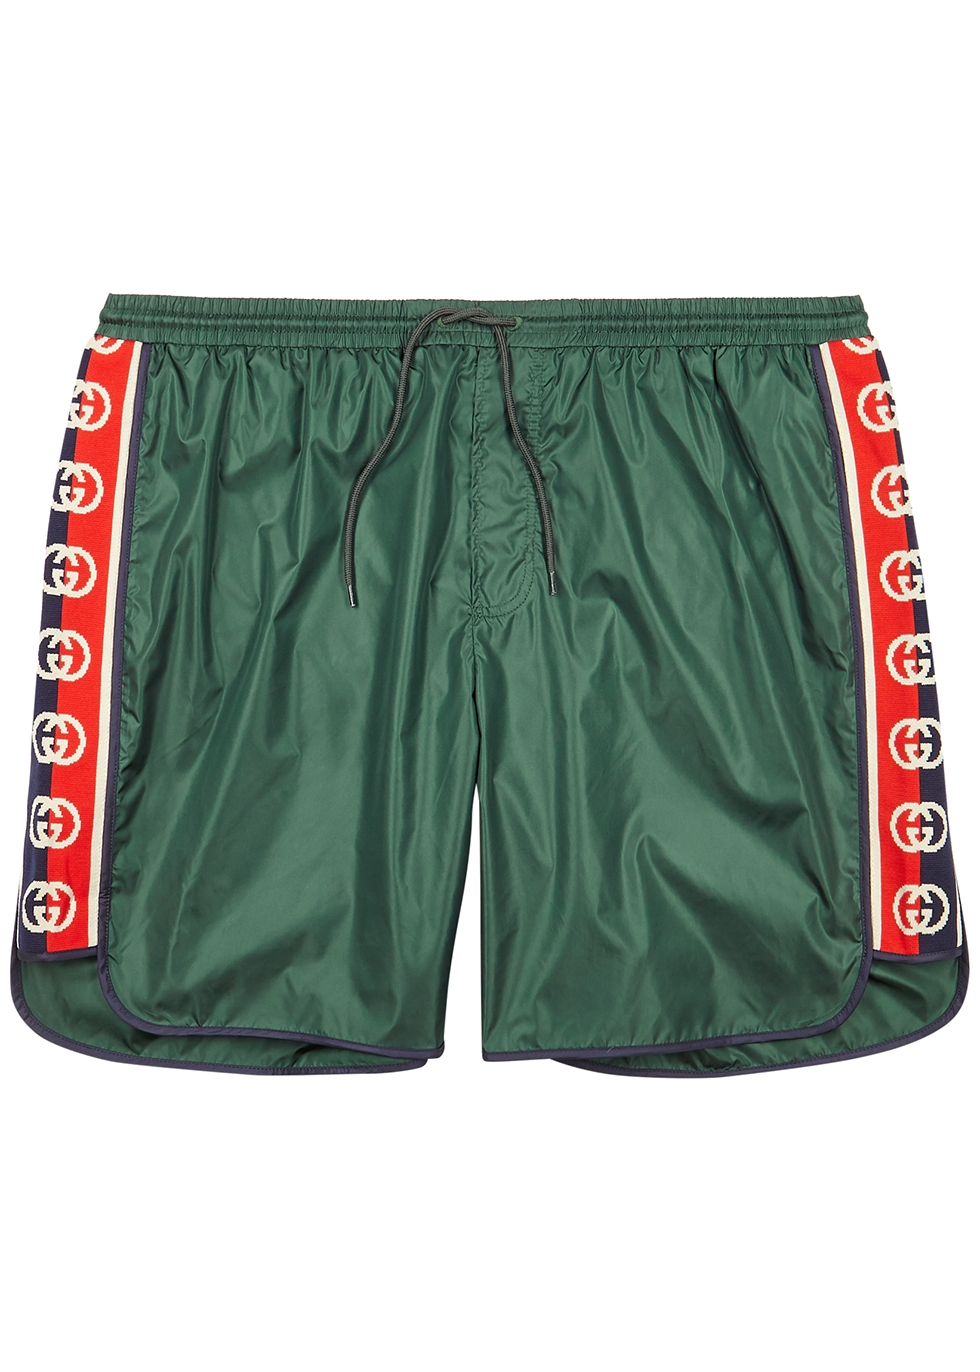 d90a0b7aea Men's Designer Swimwear - Swim Shorts & Trunks - Harvey Nichols